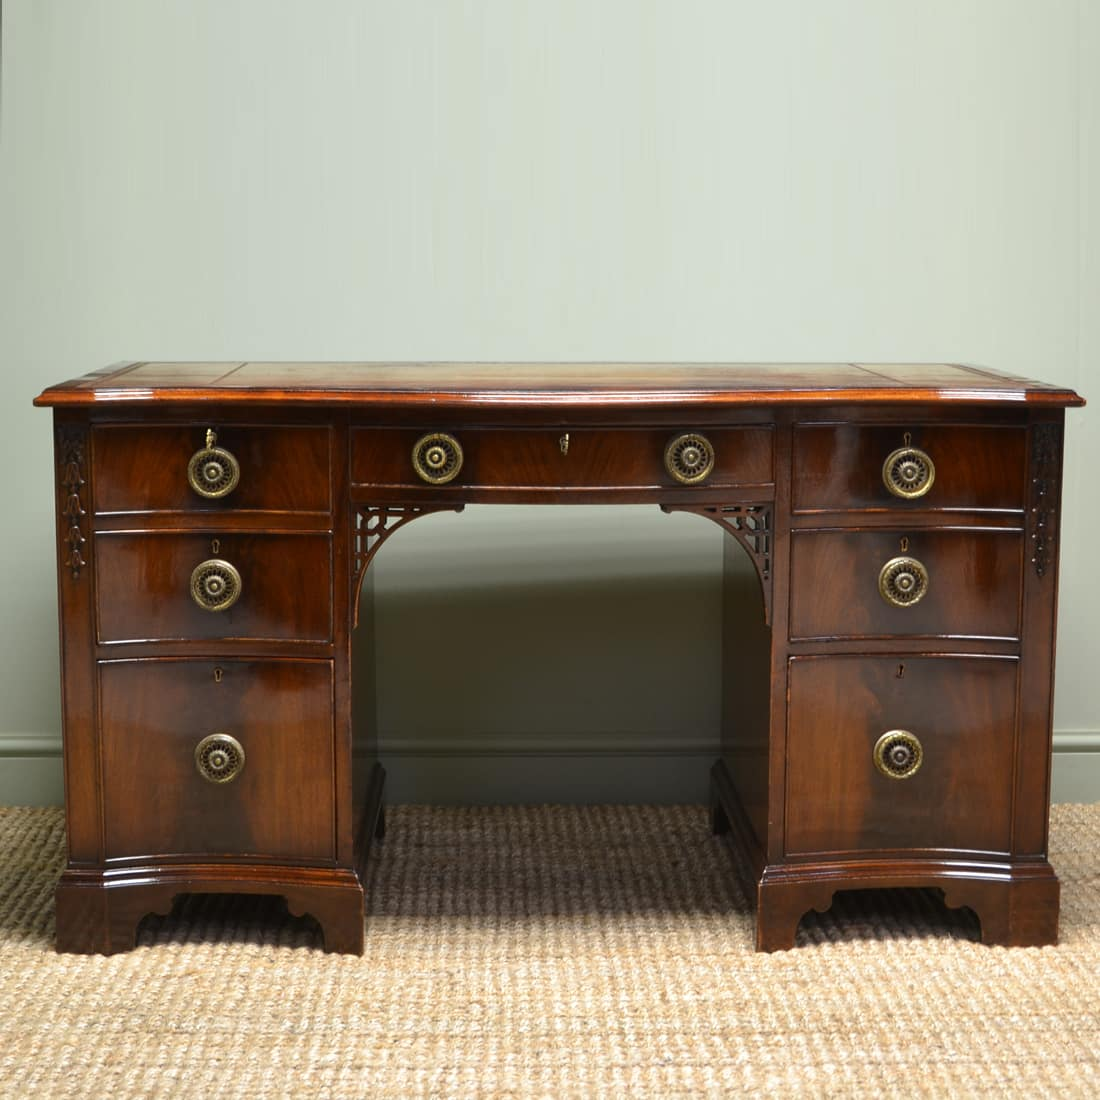 Spectacular Serpentine Shaped Front Edwardian Figured Mahogany Antique Desk